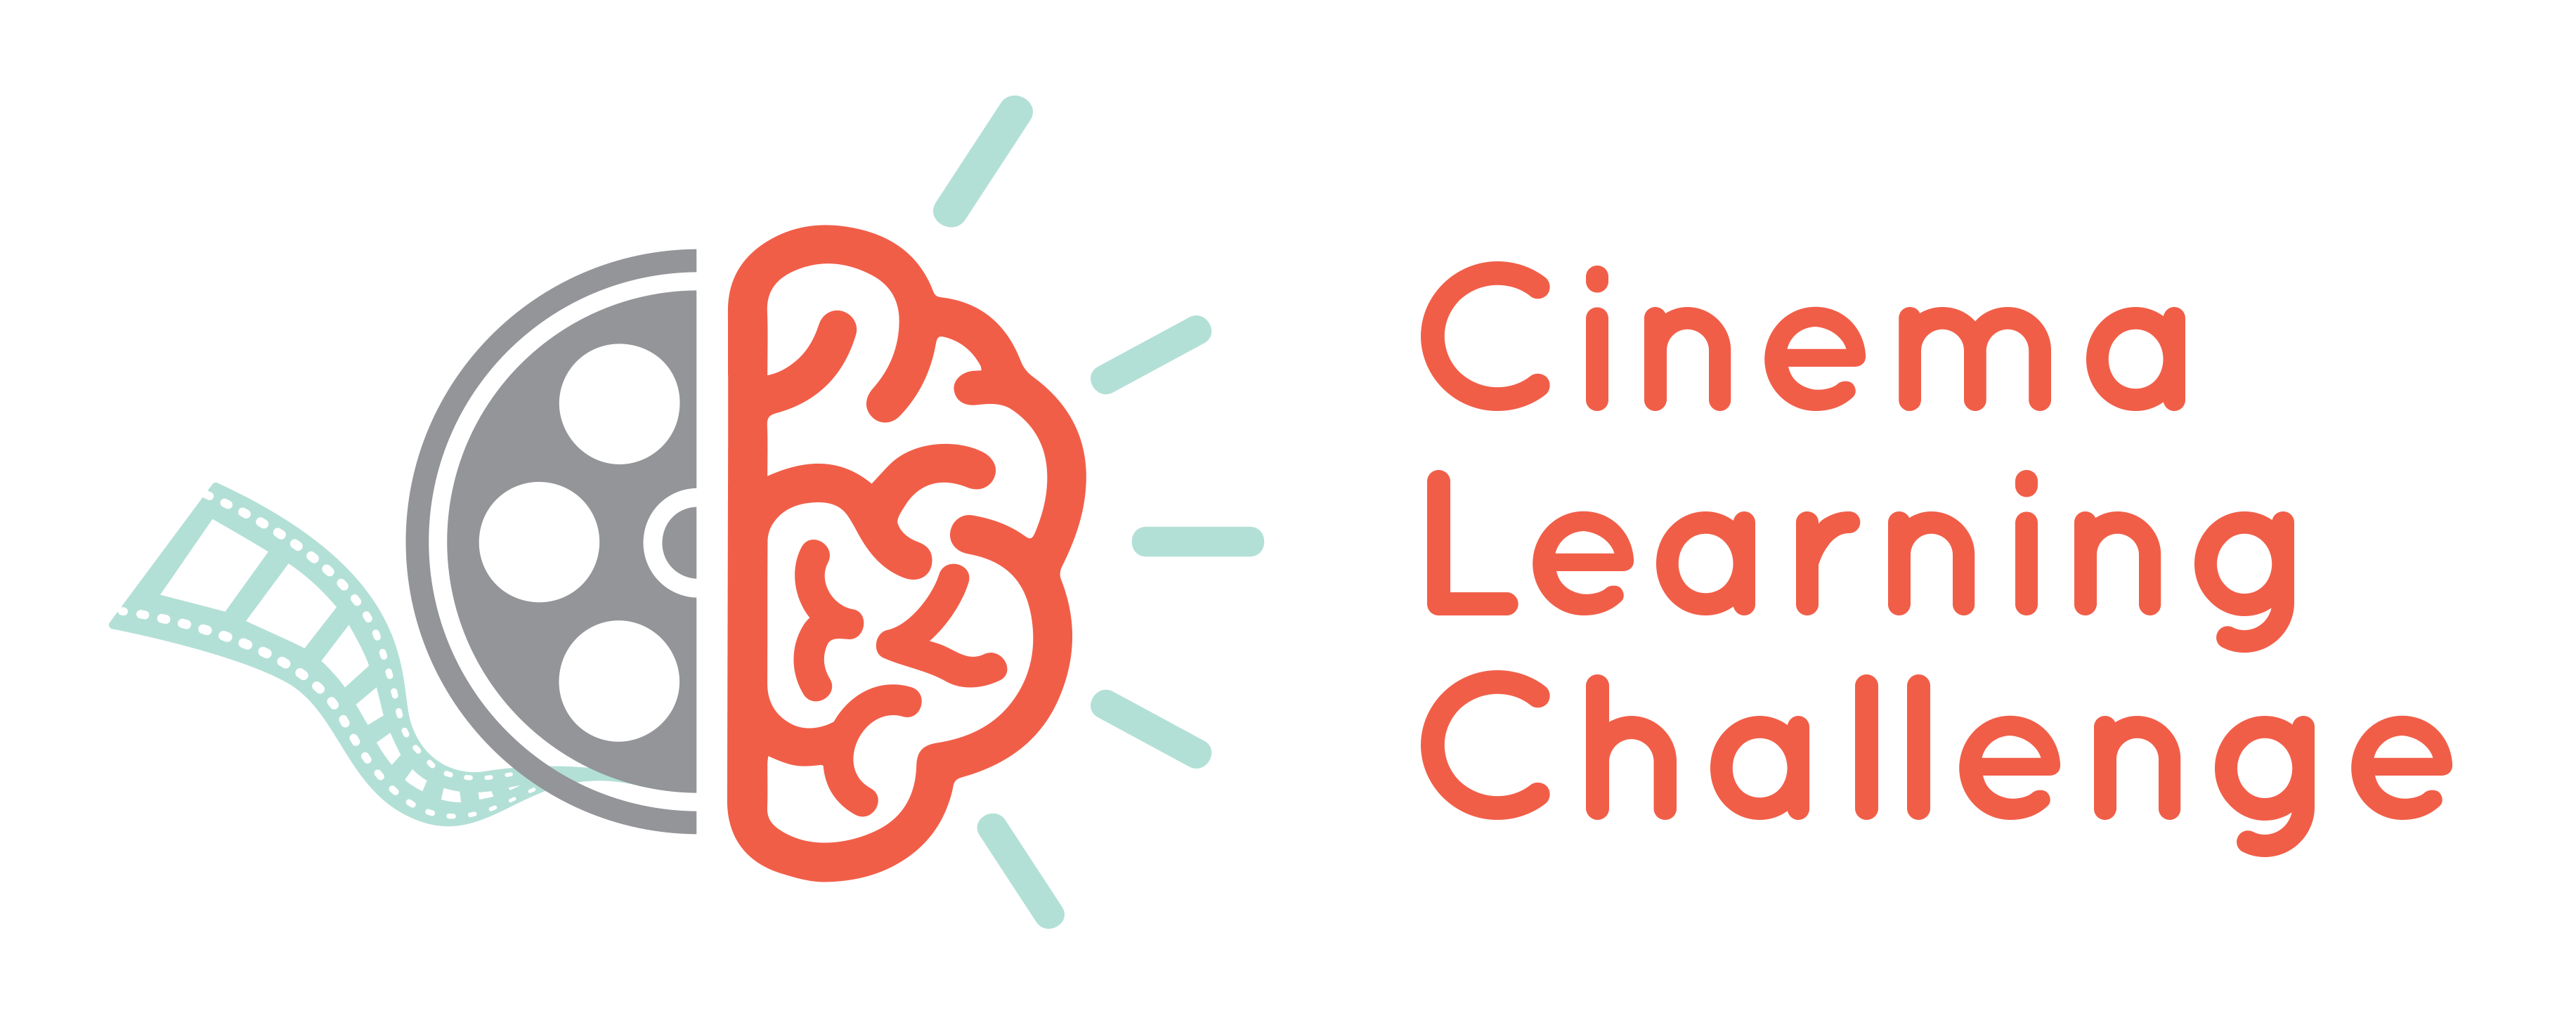 Cinema Learning Challenge